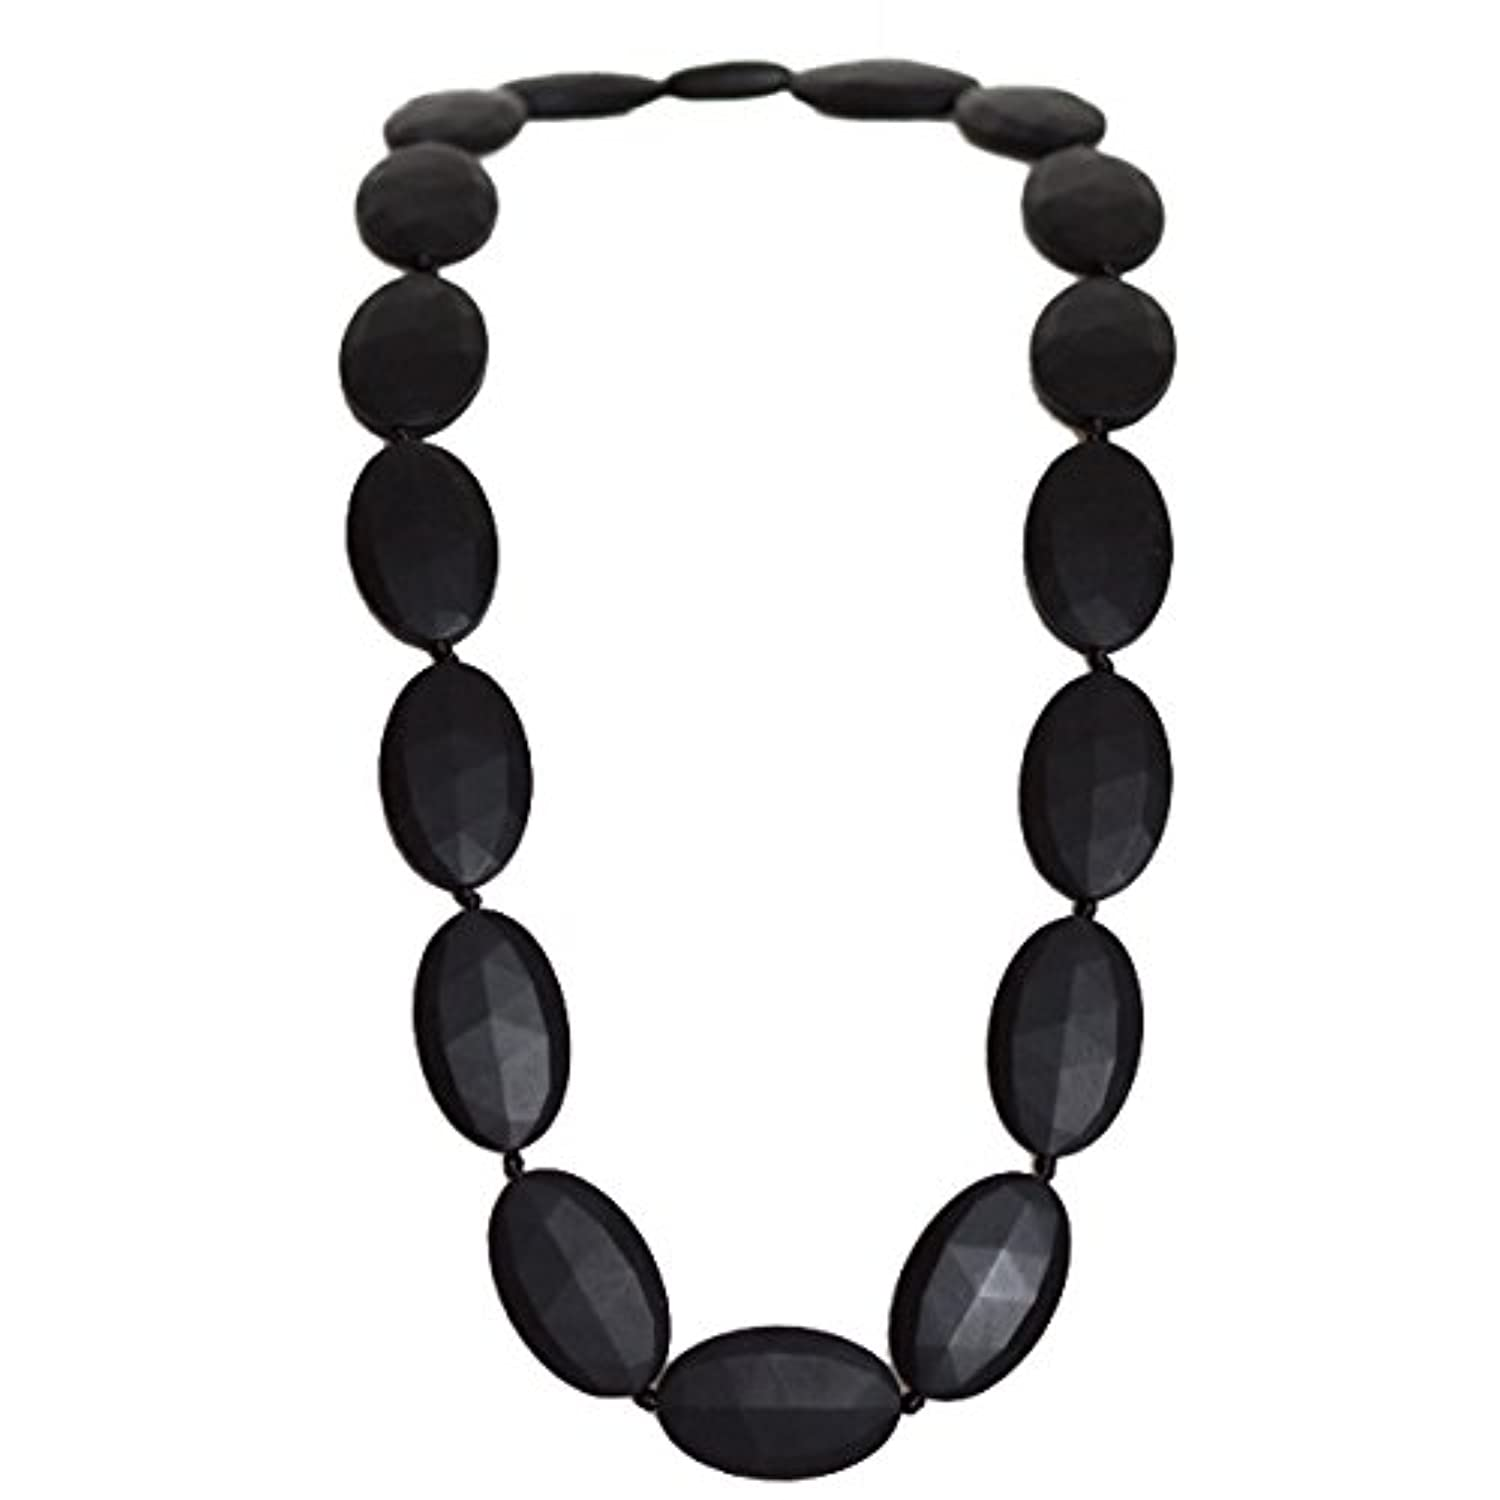 Funky Silicone Teething Necklace for Mom to Wear - Color Black - Our teething beads are made from 100% food grade silicone and are free of heavy metals, PVC and BPA free. by Bambeado